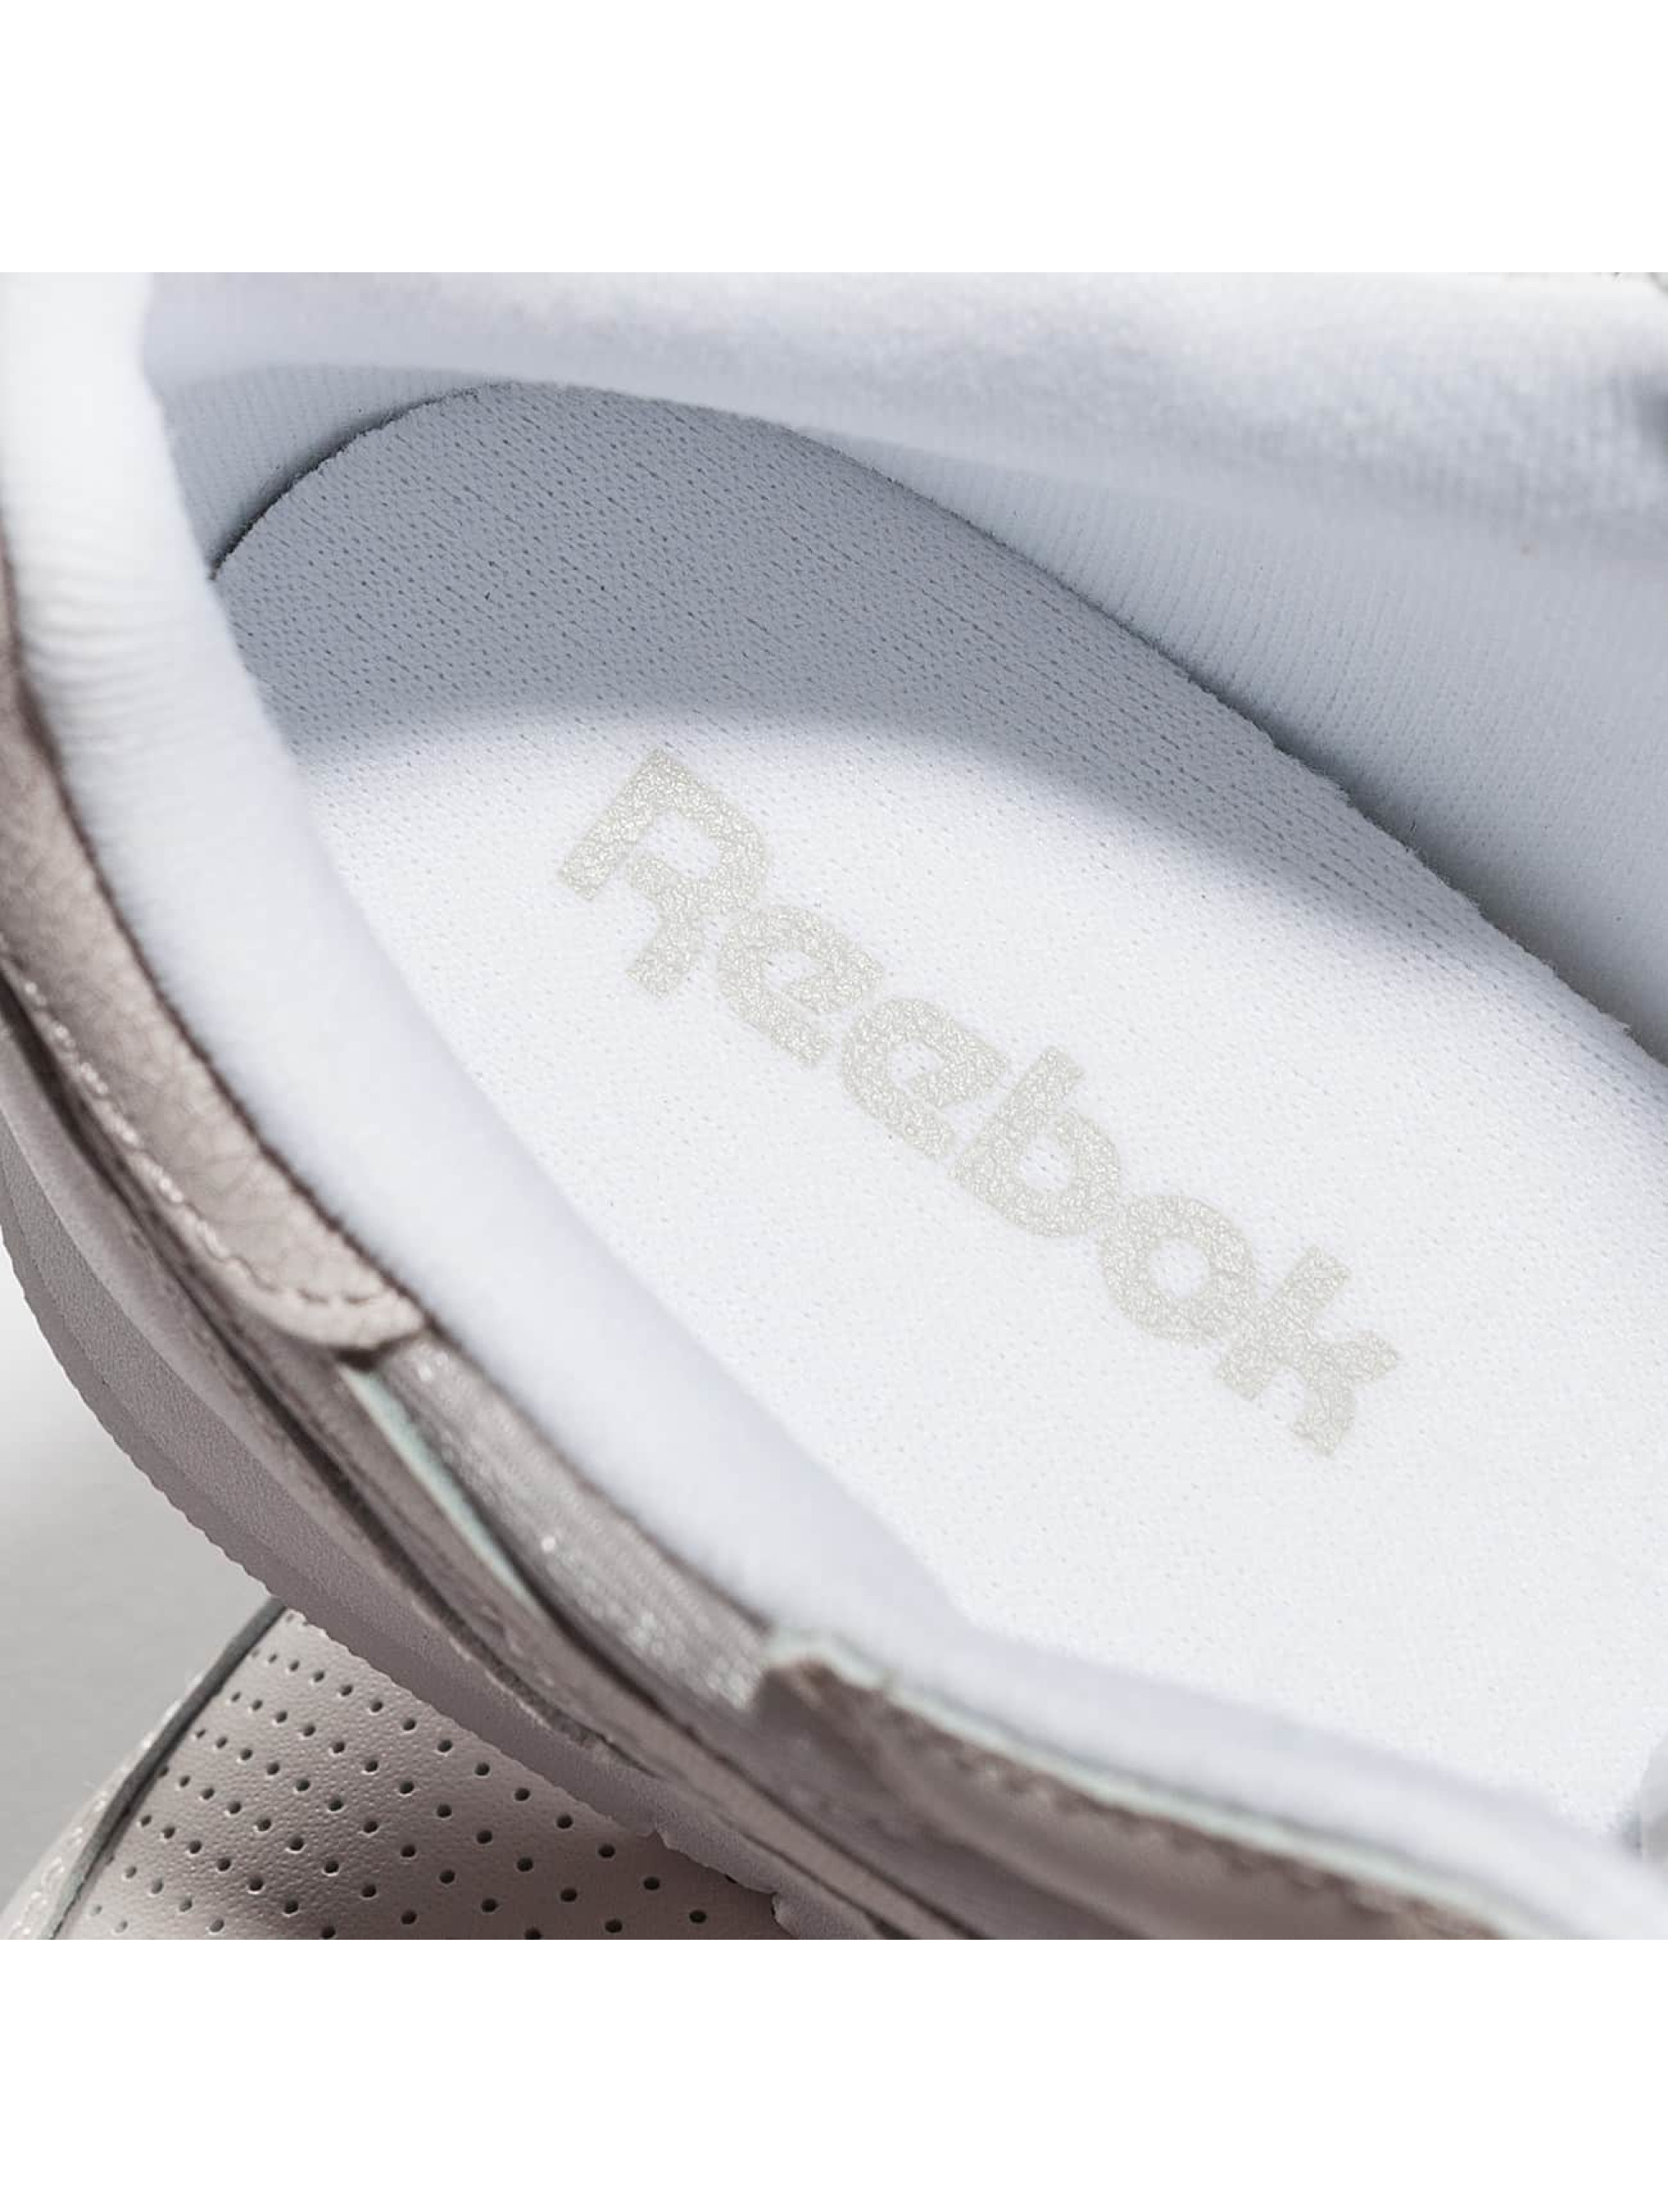 Reebok Sneakers Classic Leather FBT rose